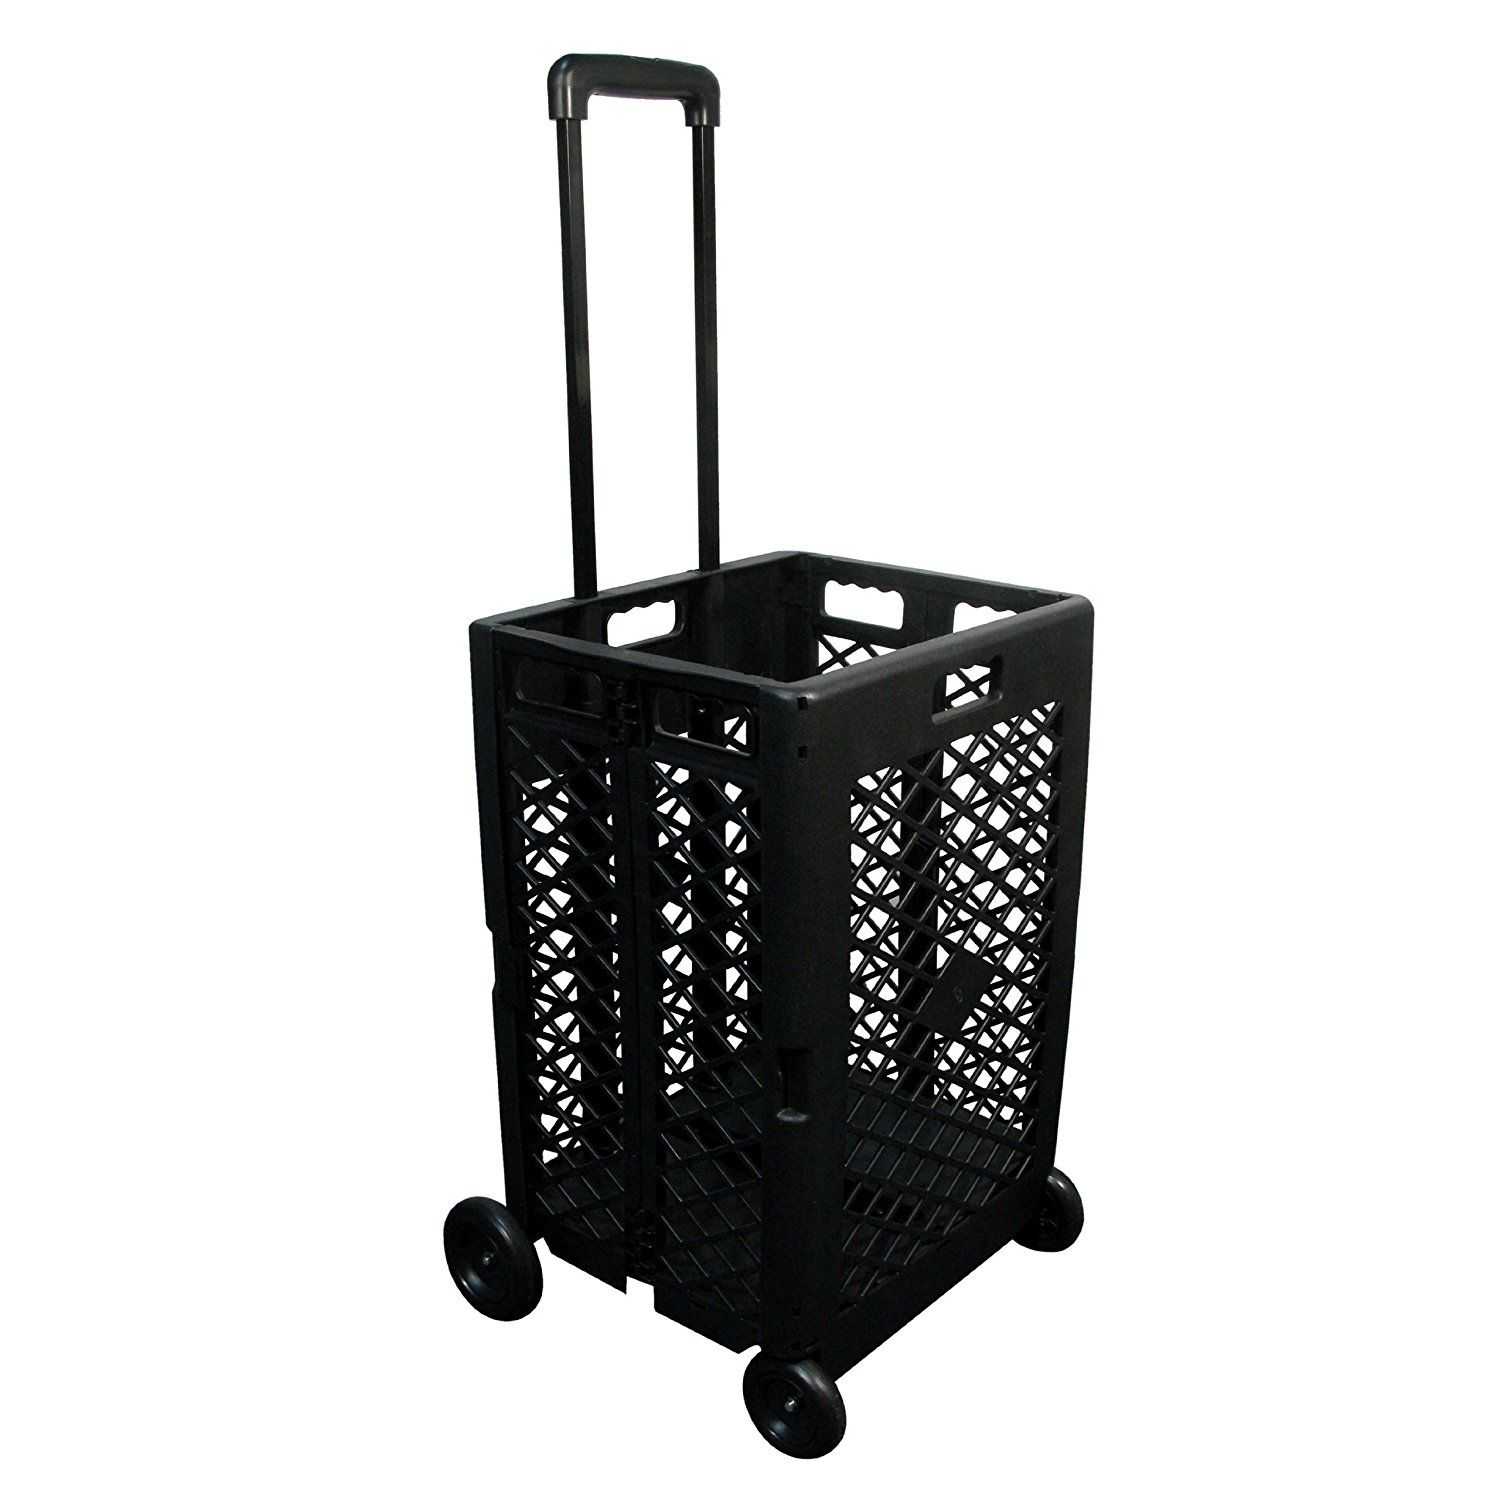 Olympia Tools 85 404 Pack N Roll Mesh Rolling Cart Service Carts